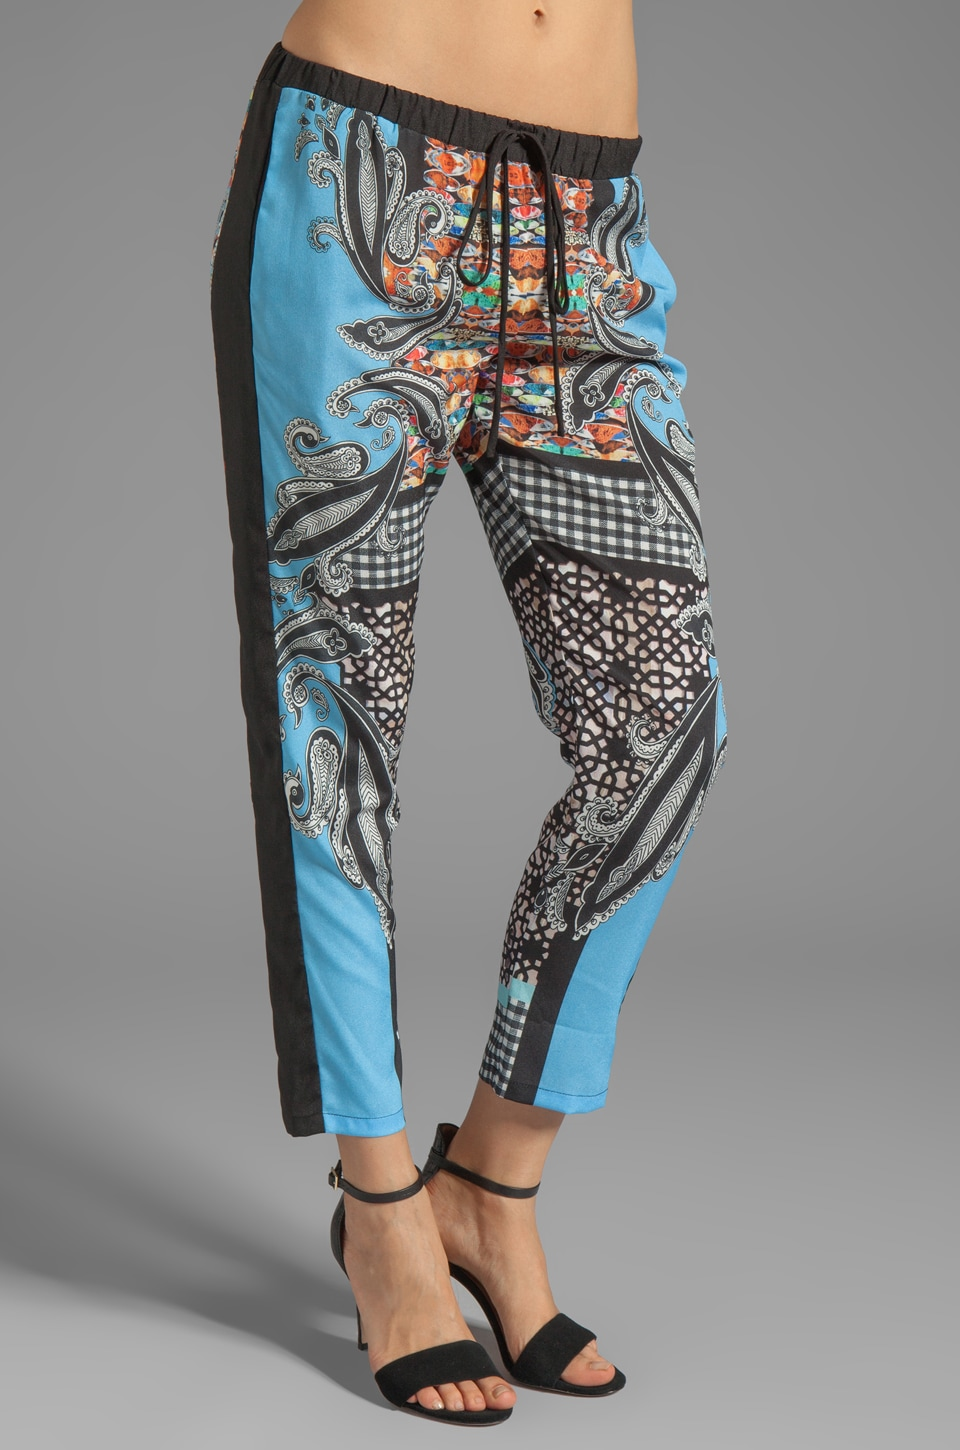 Clover Canyon Spice Market Pant in Multi